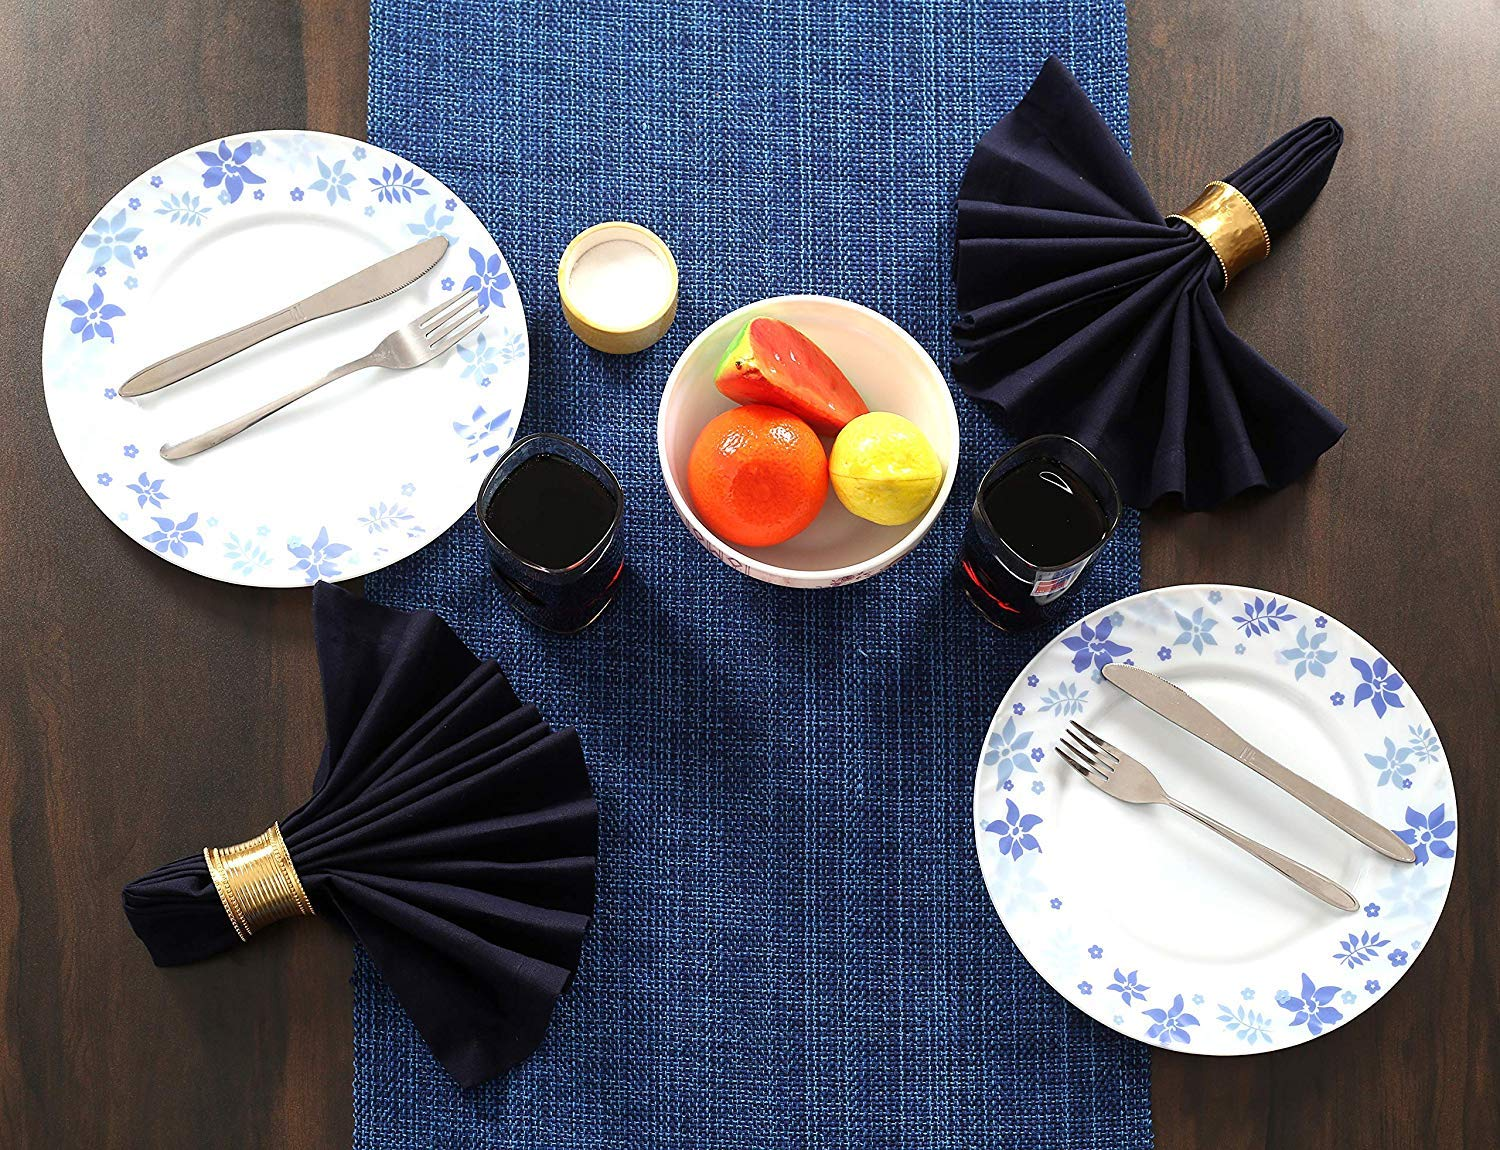 16x72 Wedding Table Runner Fringes Rustic Bridal Shower Decor Table Runner Elegant Dining Table Runner Navy Blue Cotton Clinic Table Runner Farmhouse Vintage 72 Inch